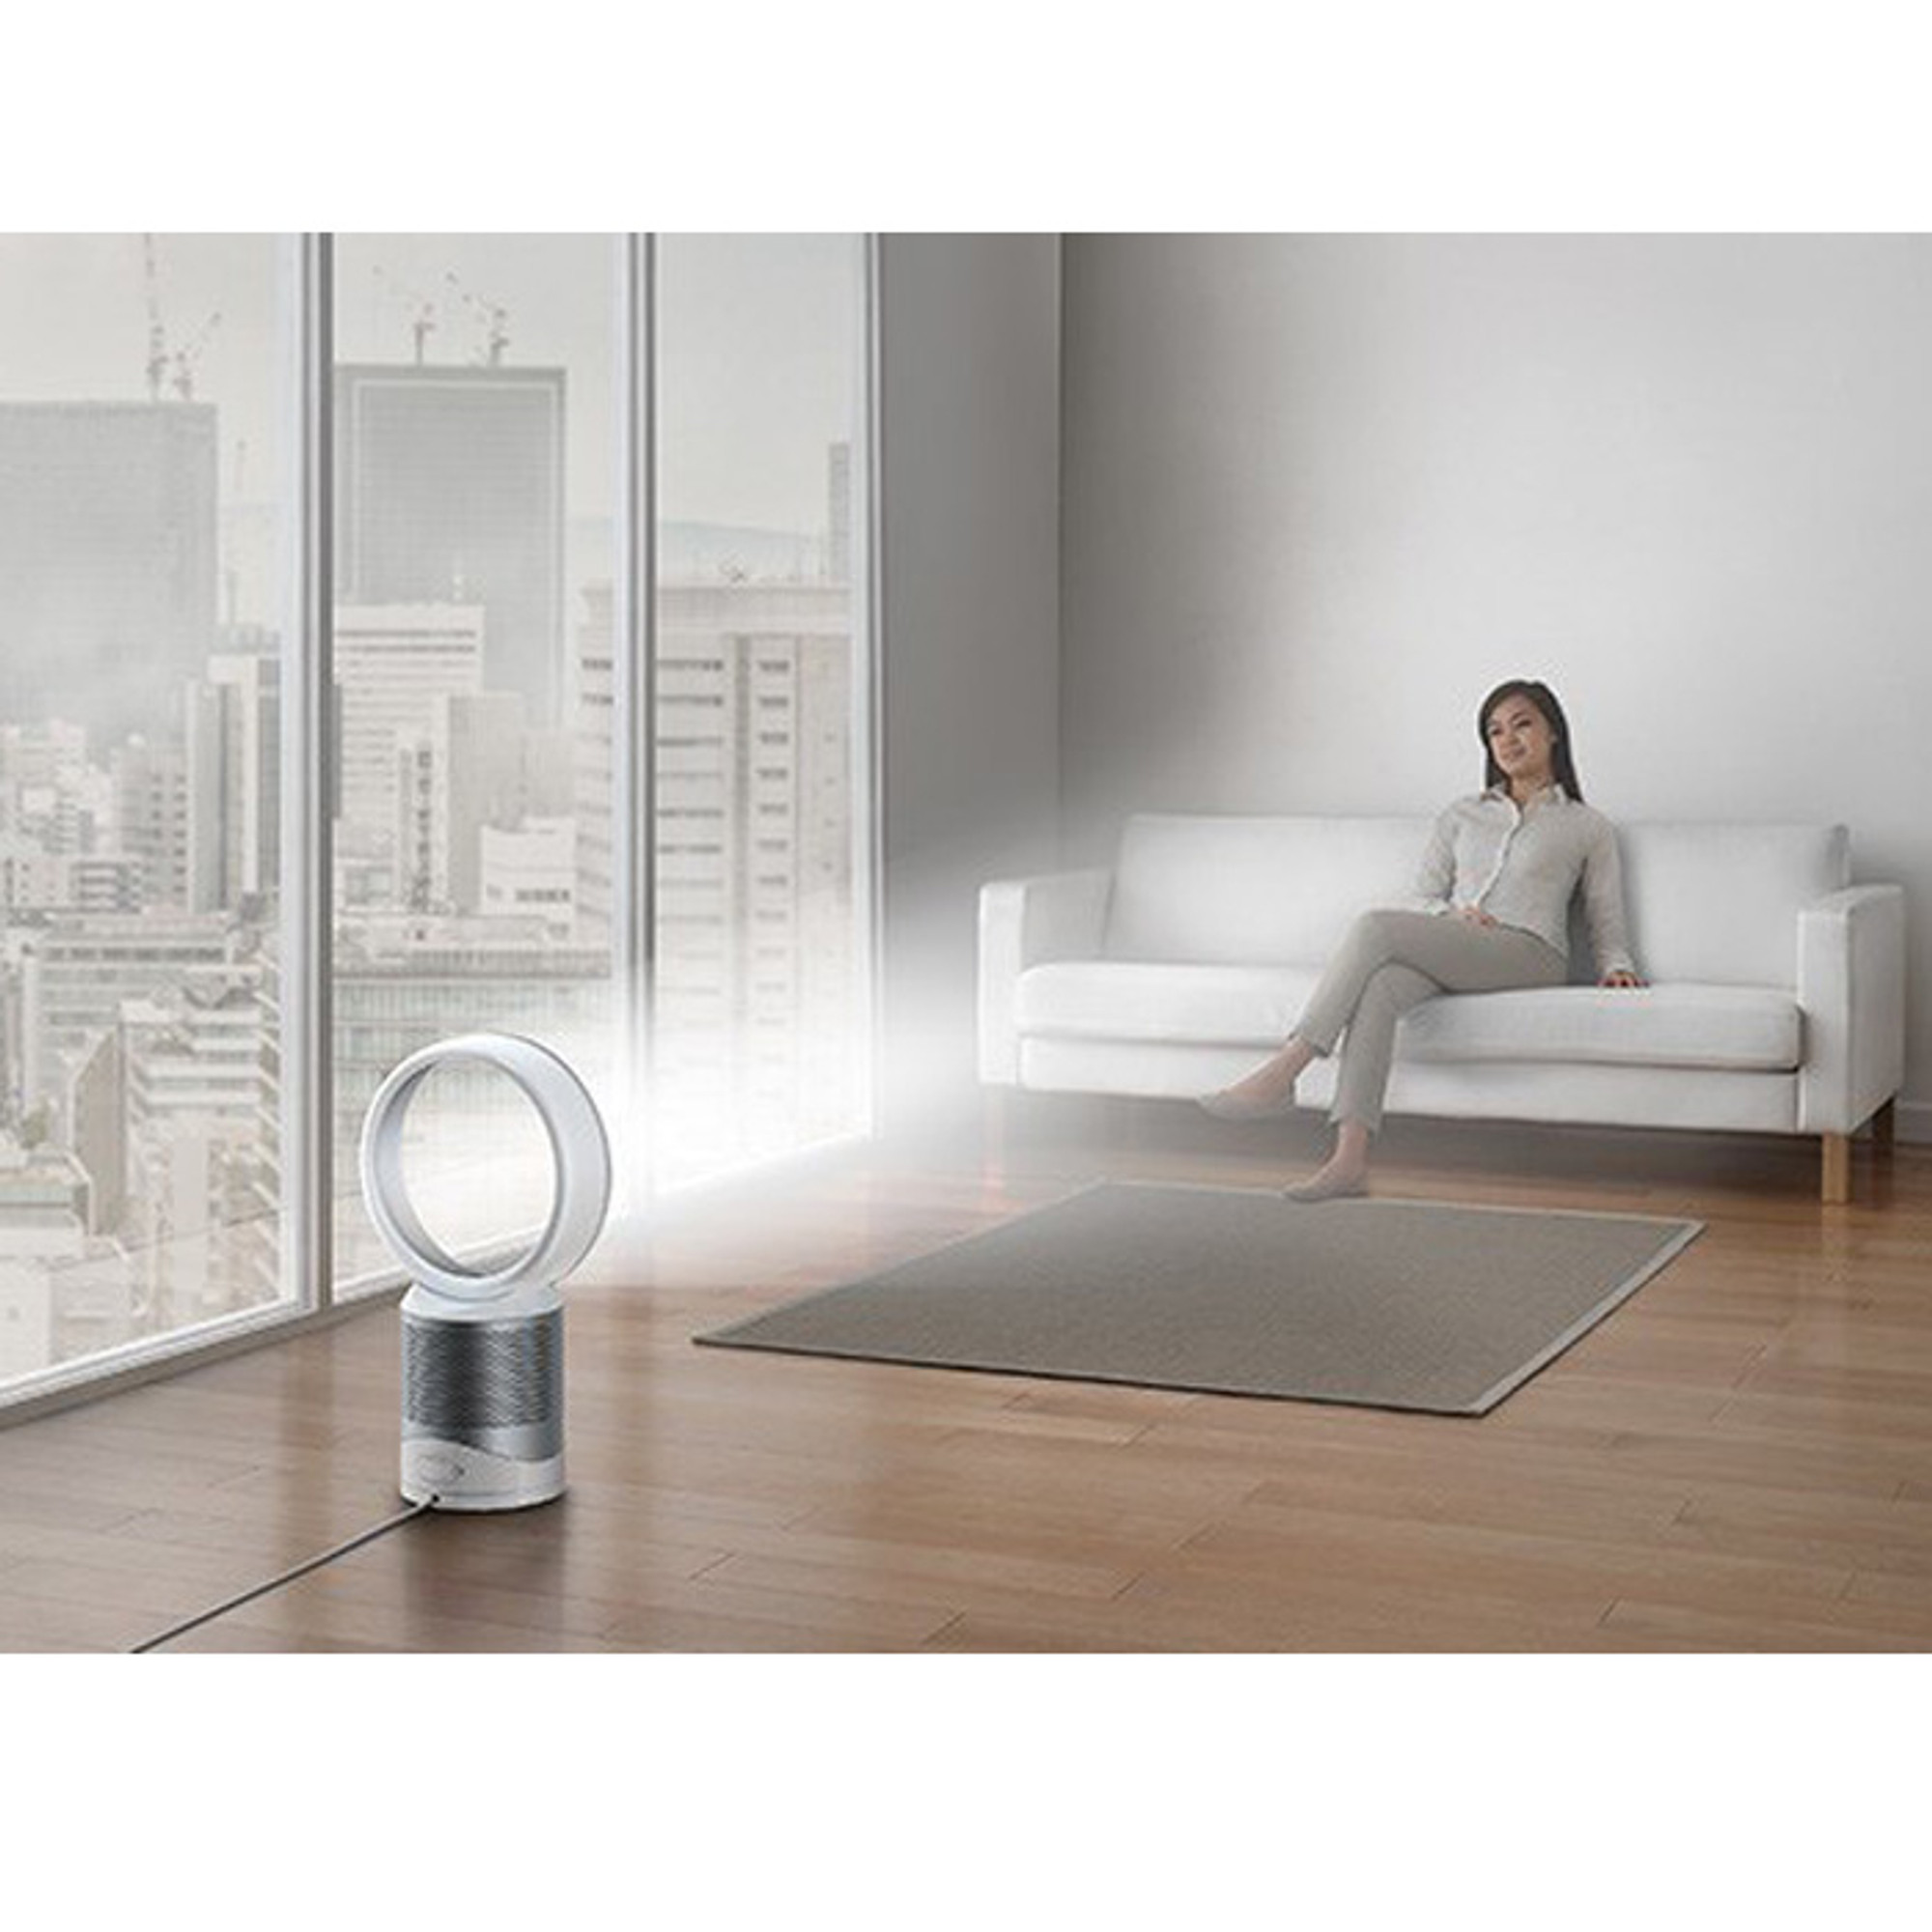 Buy Dyson Pure Cool Link Desk Air Purifier From Canada At